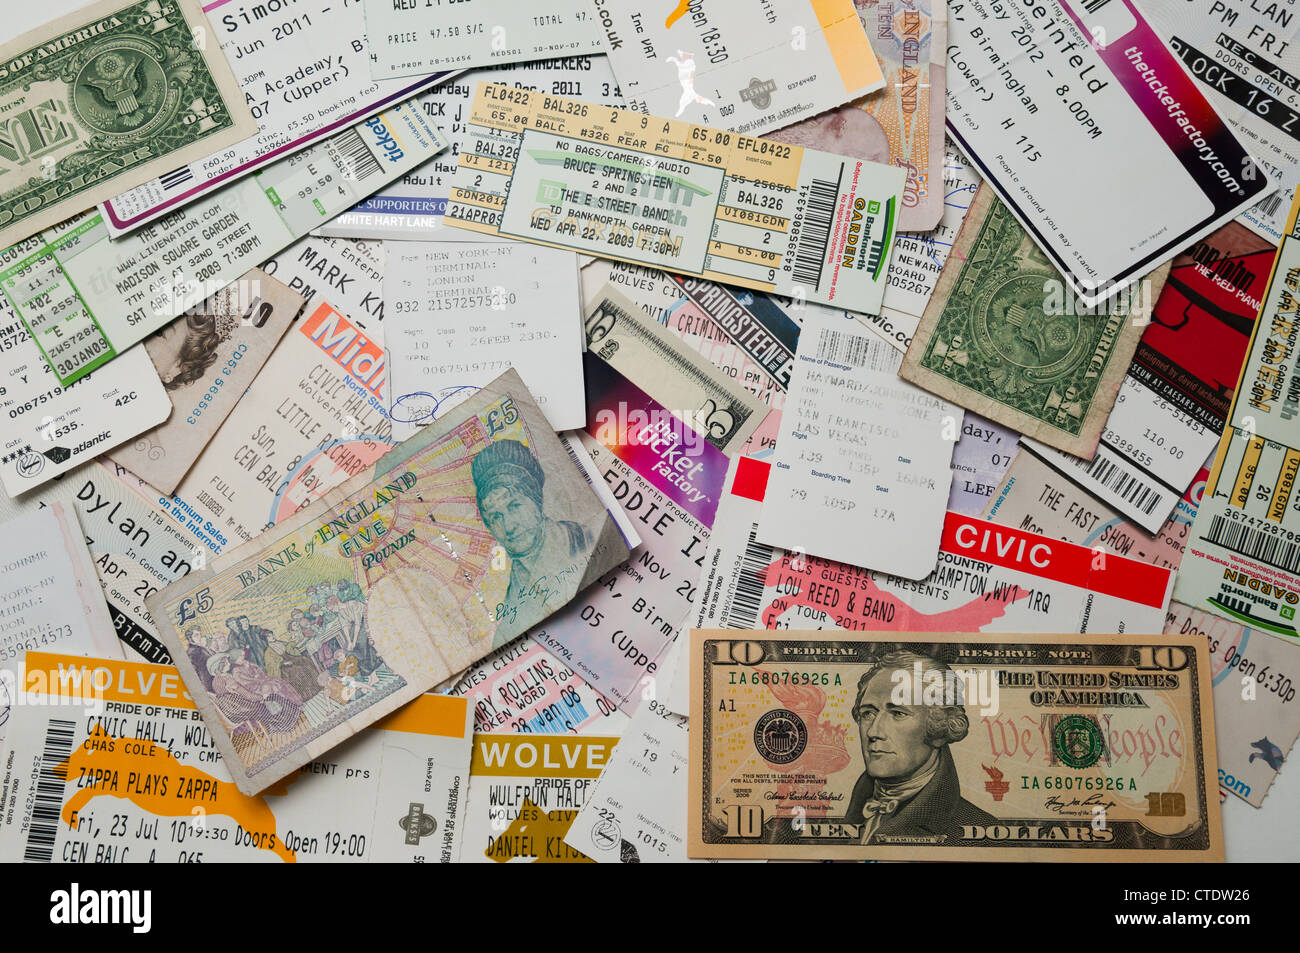 A pile of concert tickets, plane tickets and money - Stock Image